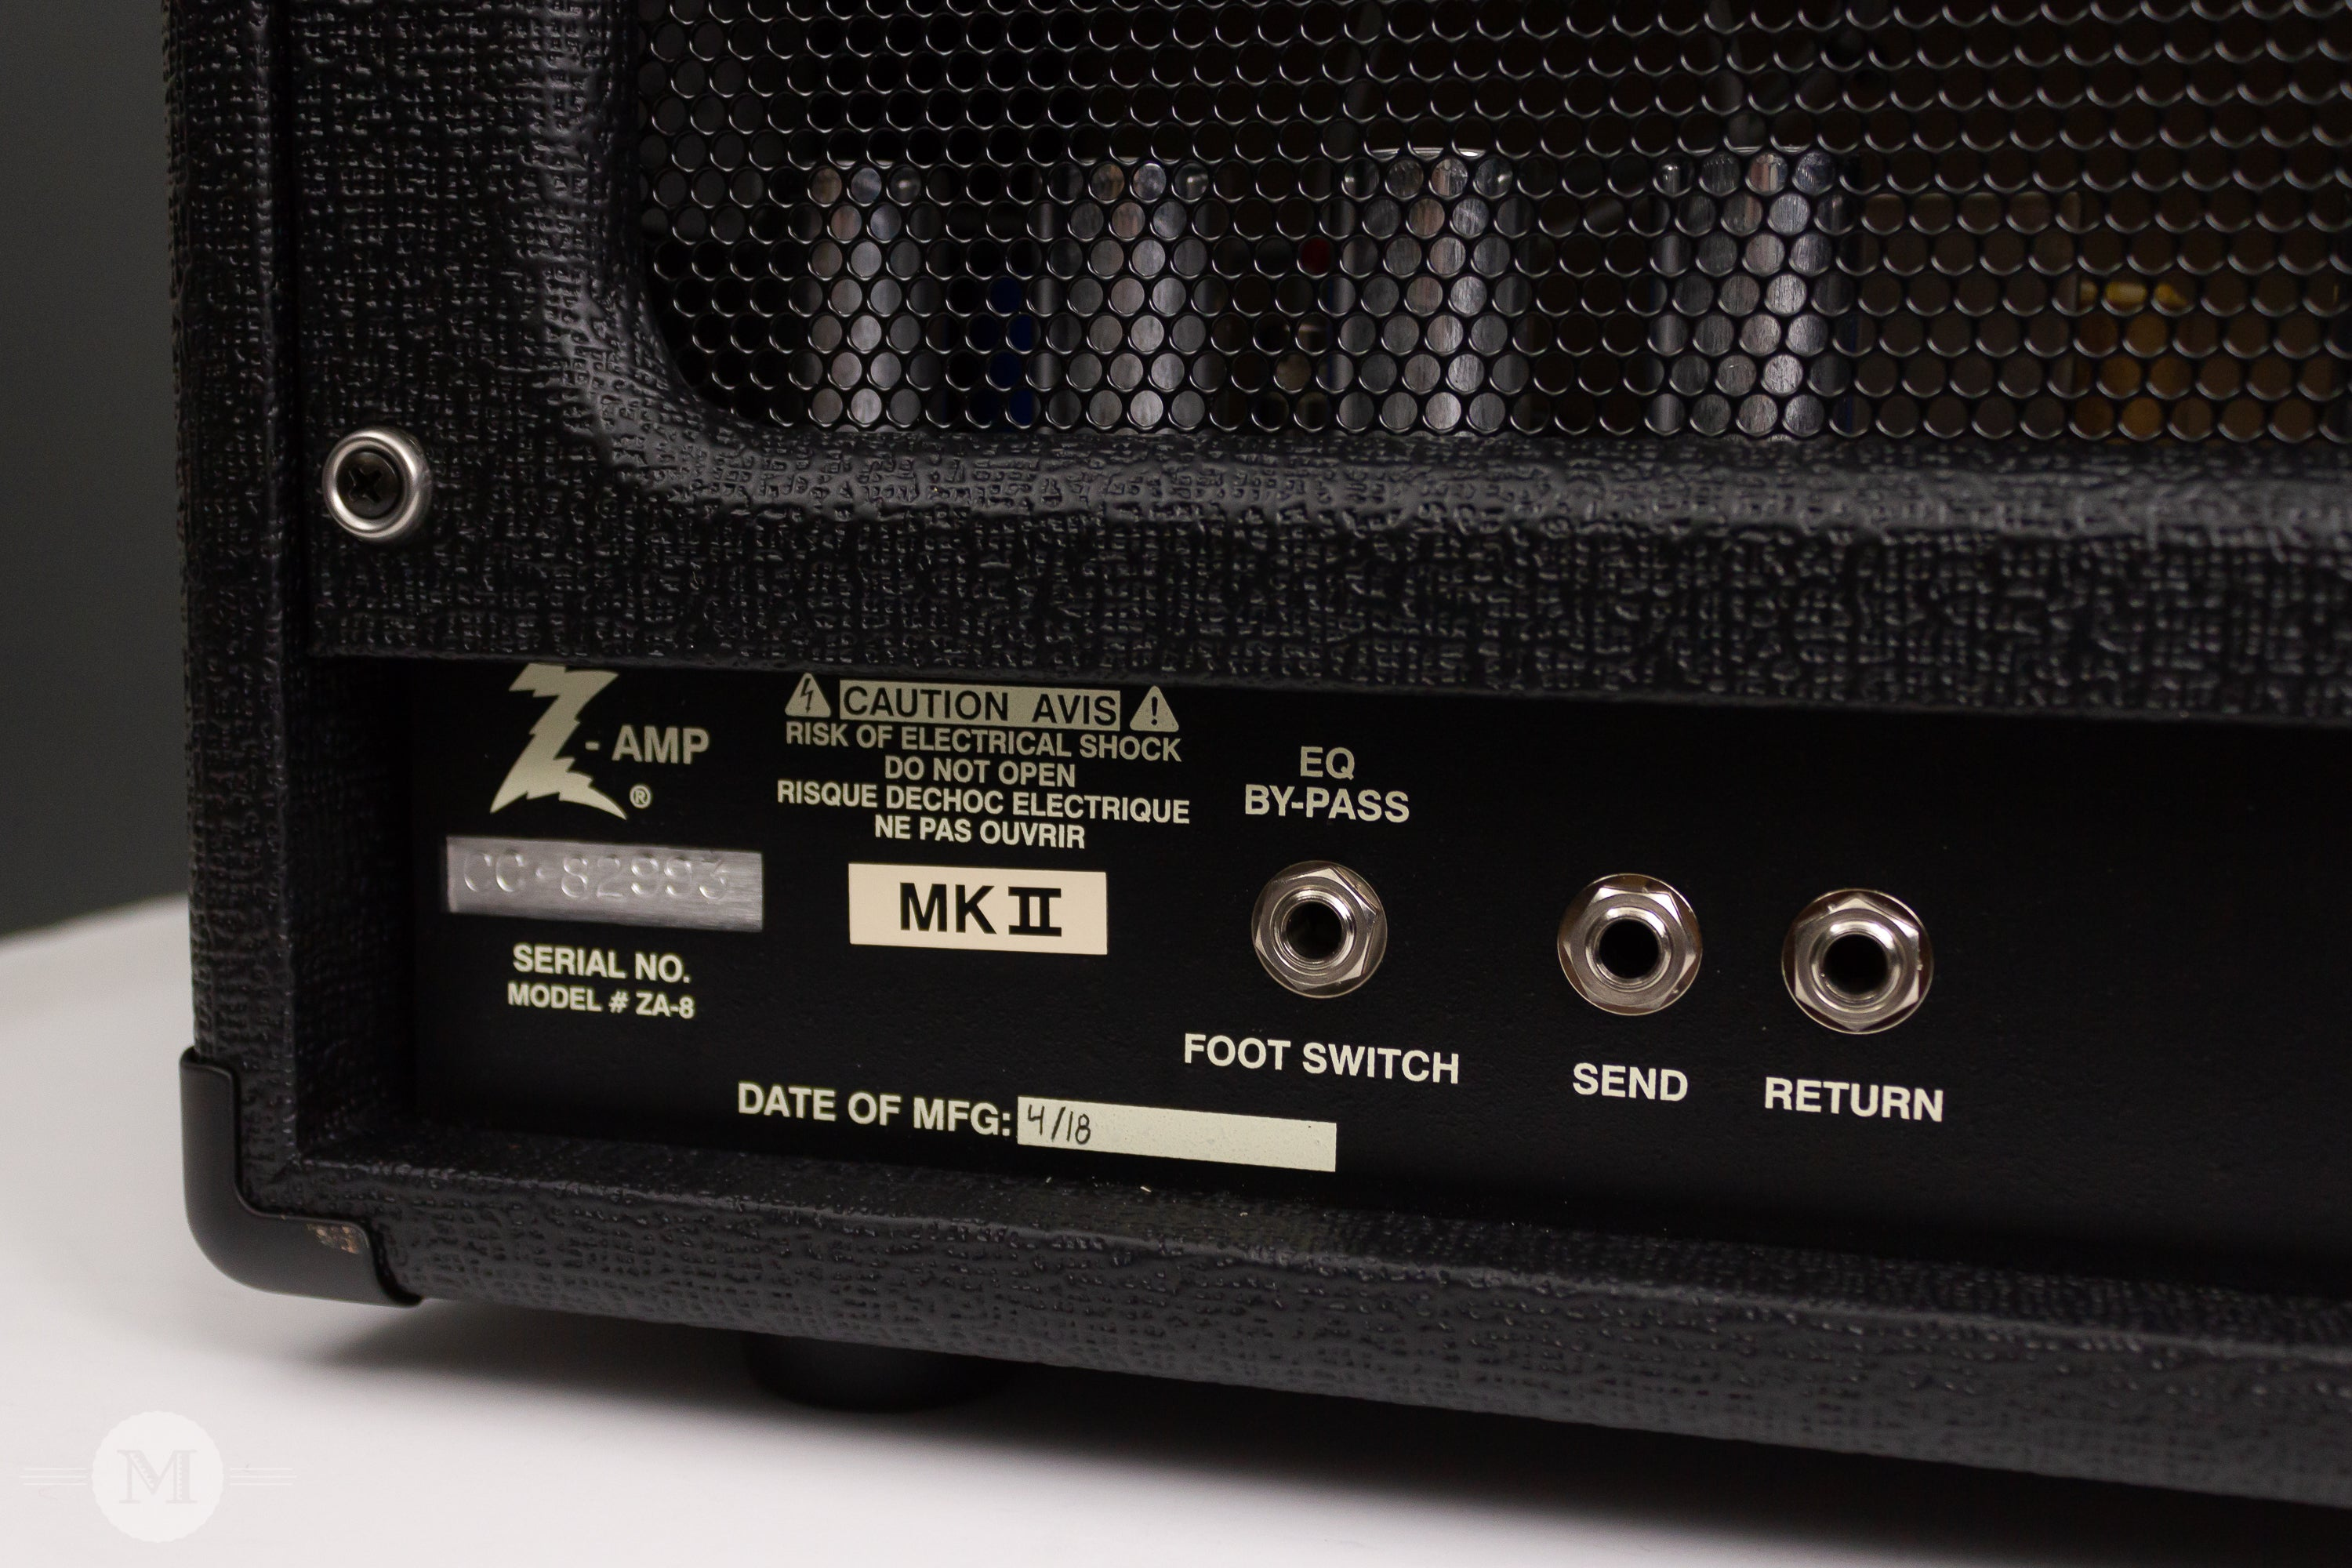 Dating dr z amps